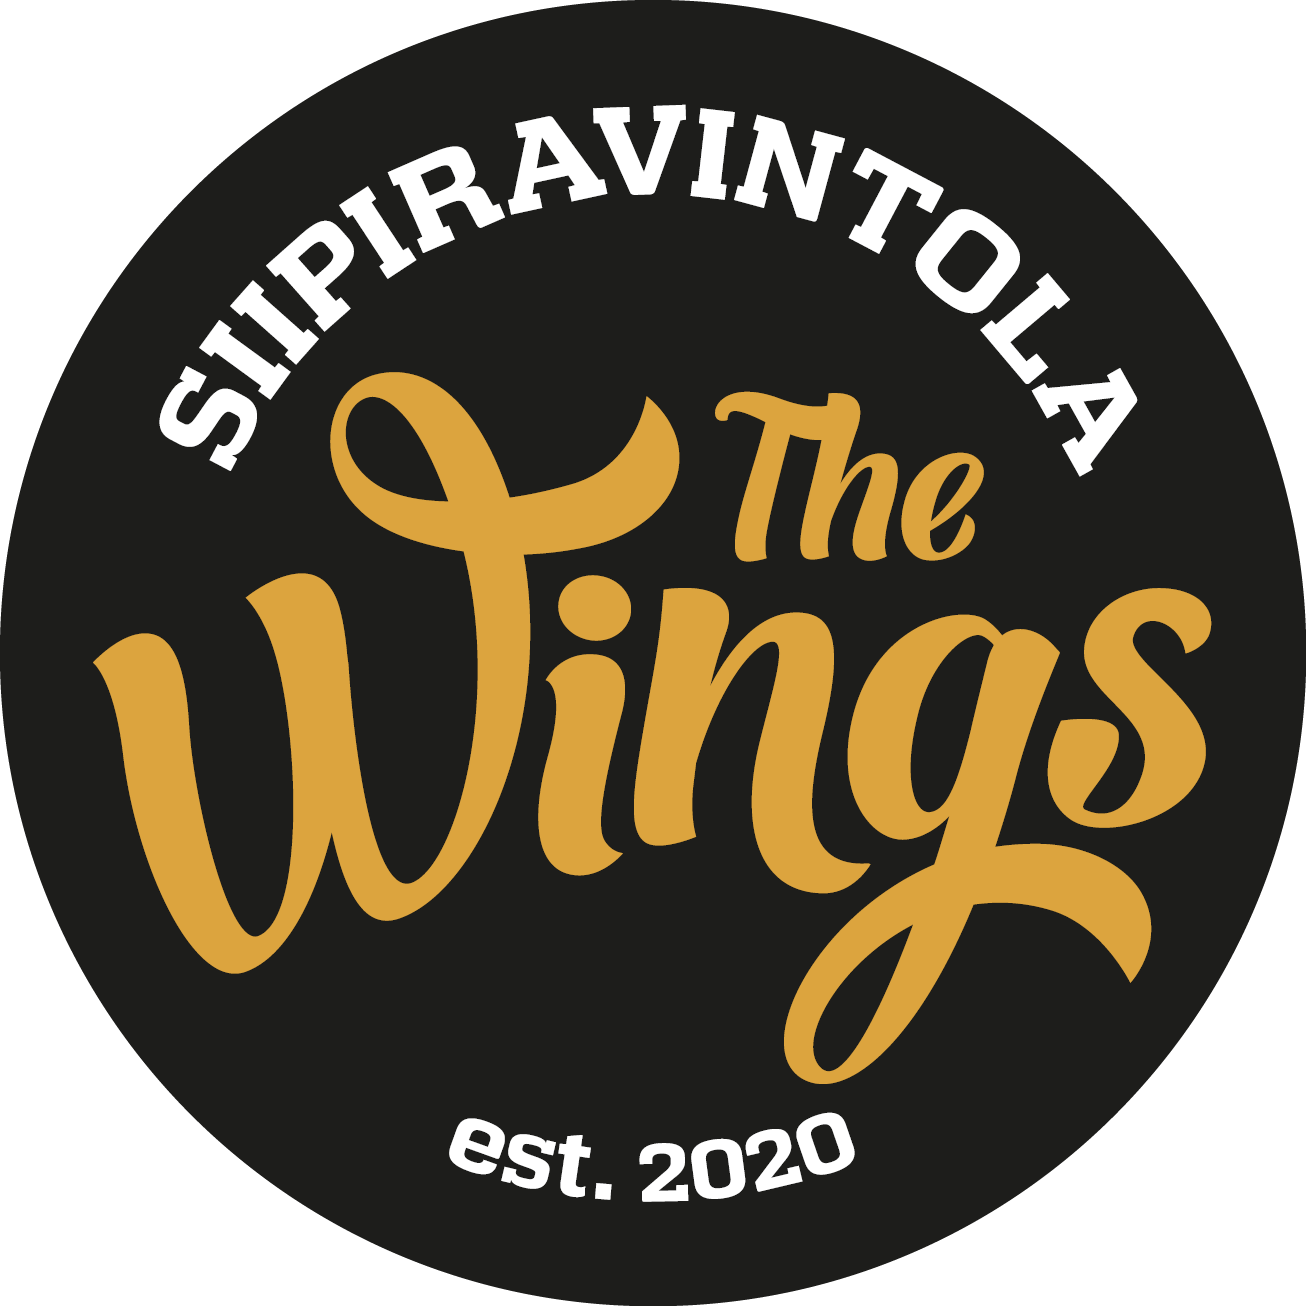 Siipiravintola The Wings Oy